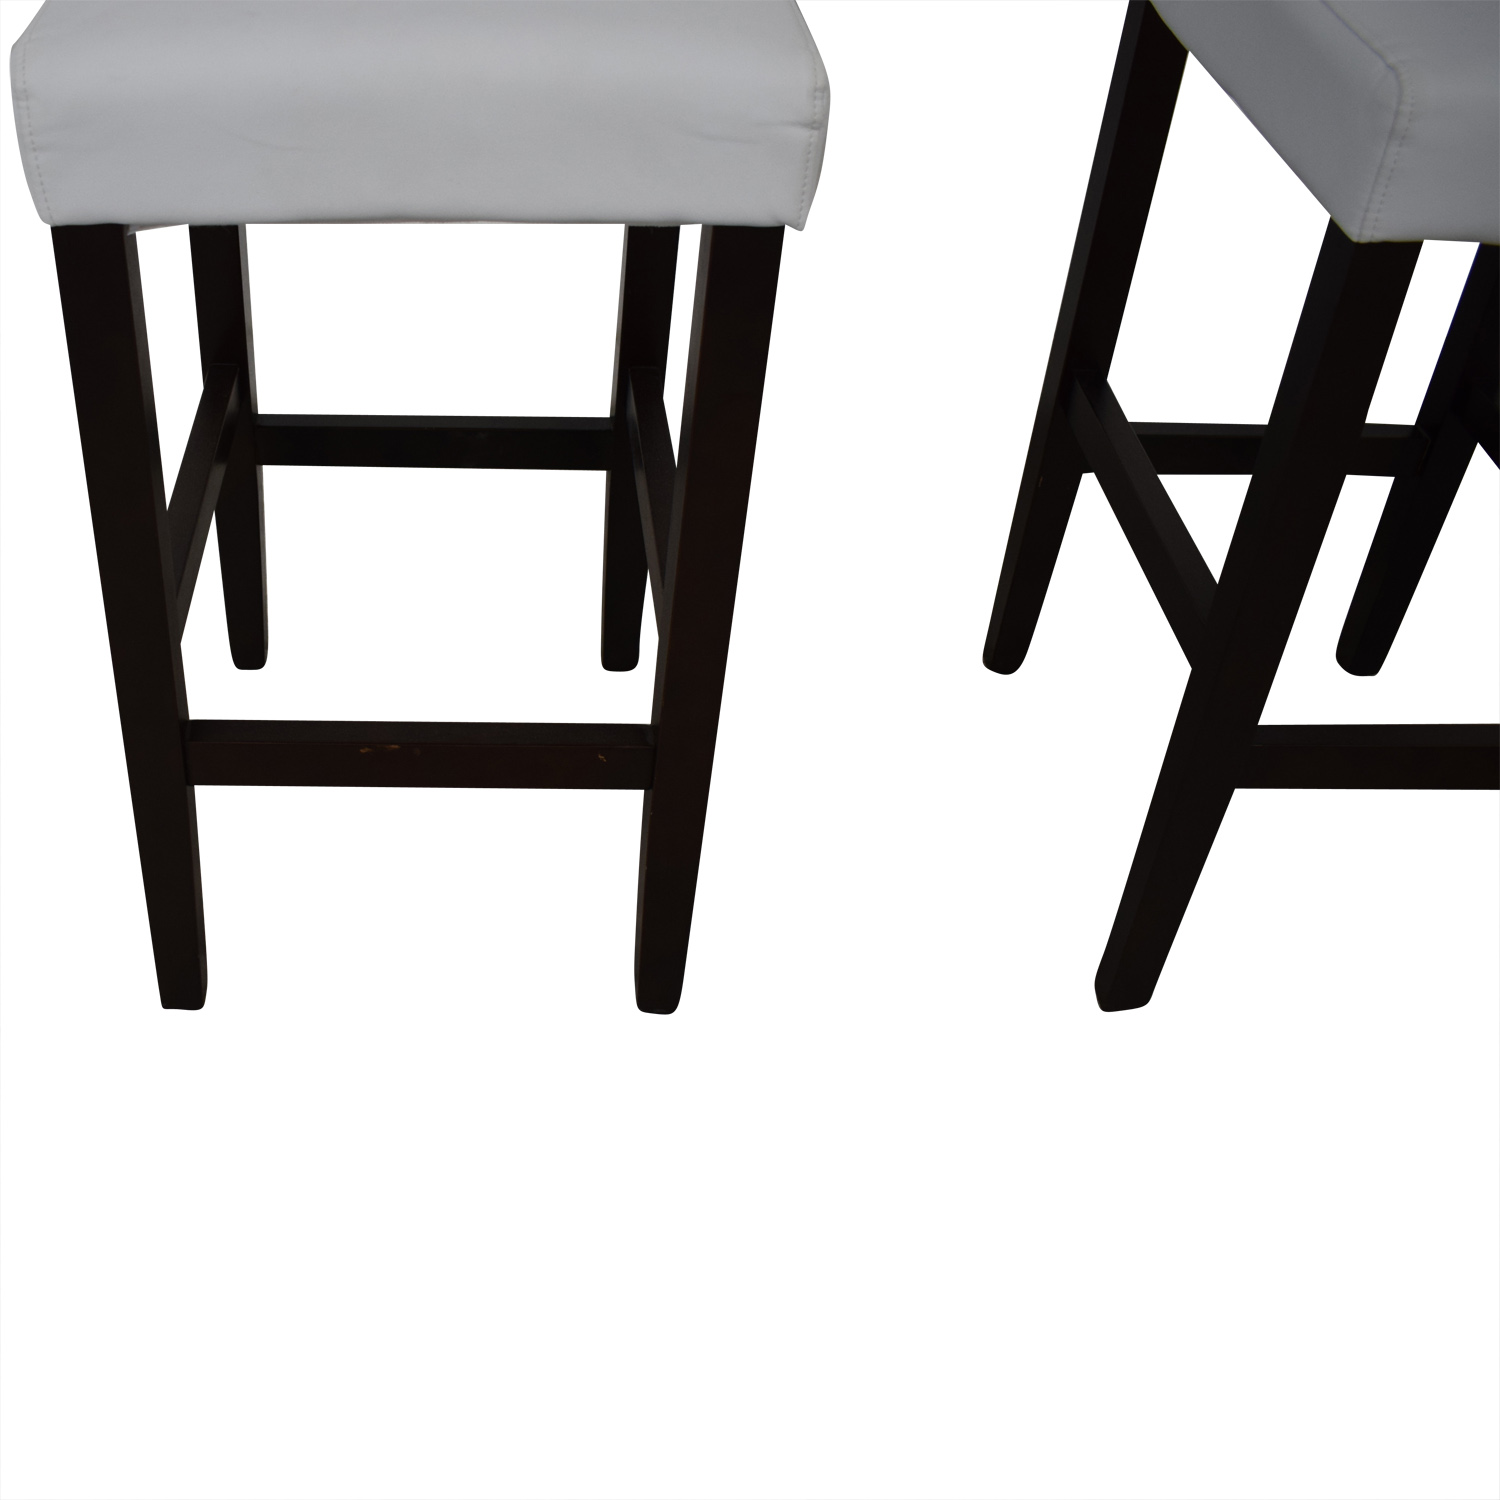 buy Crate & Barrel Tufted White Barstools Crate & Barrel